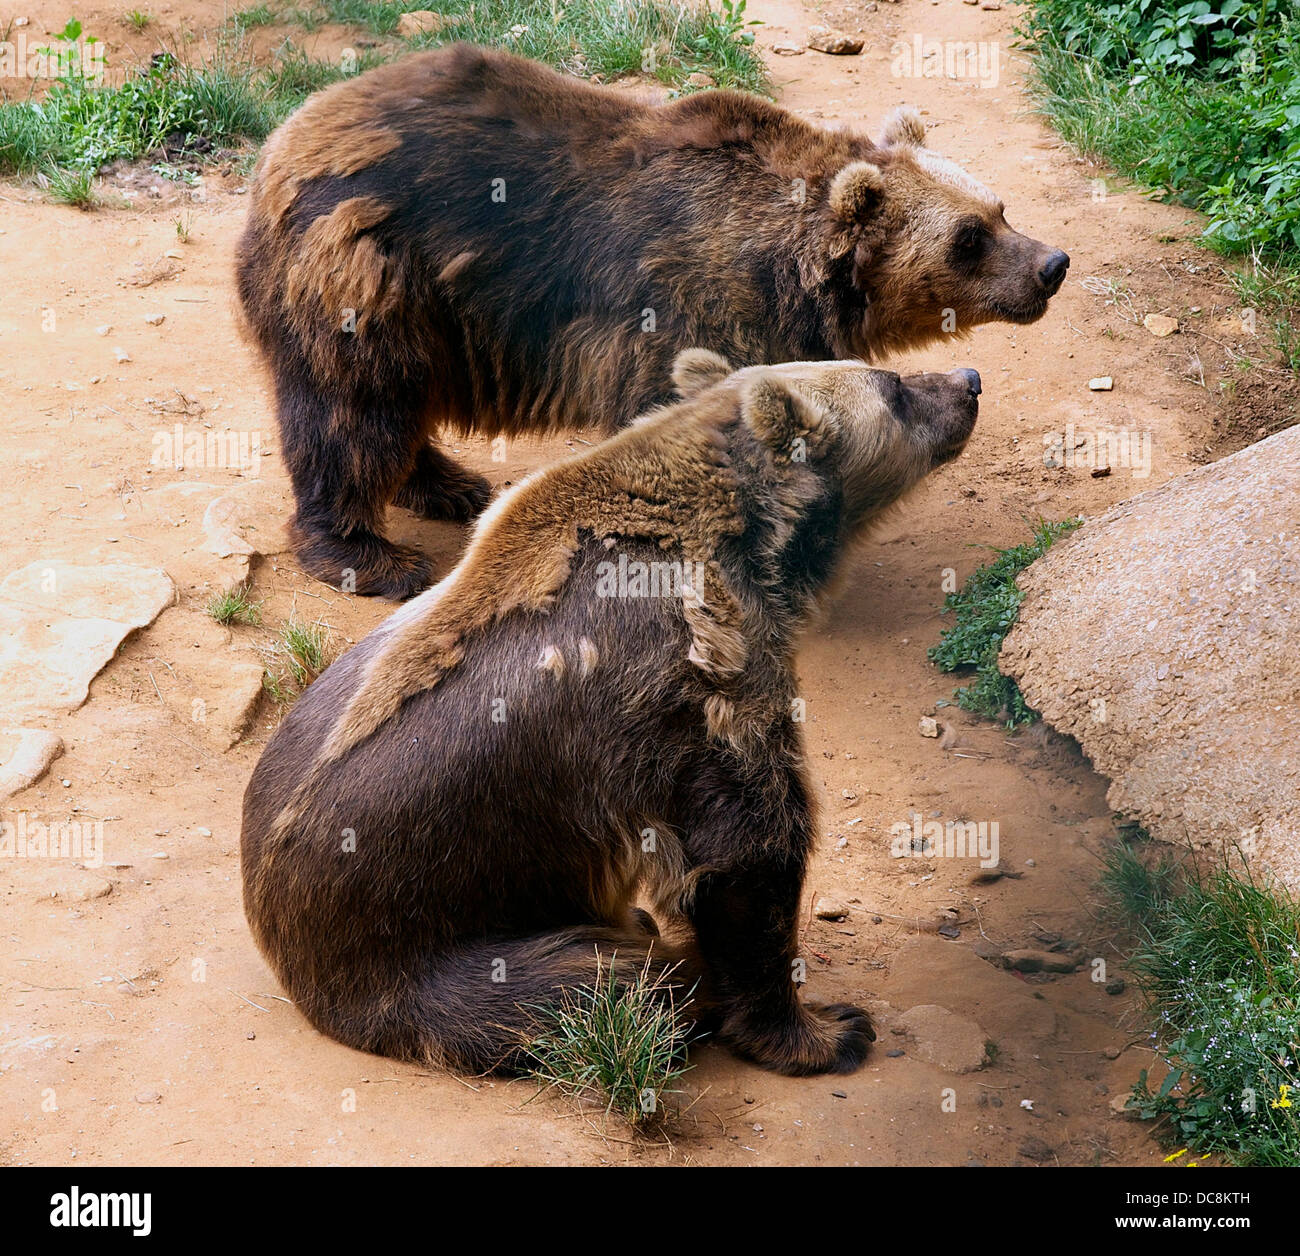 Moulting (molting ?) bears, in the prehistoric site of Le Regourdou in Dordogne, France. - Stock Image